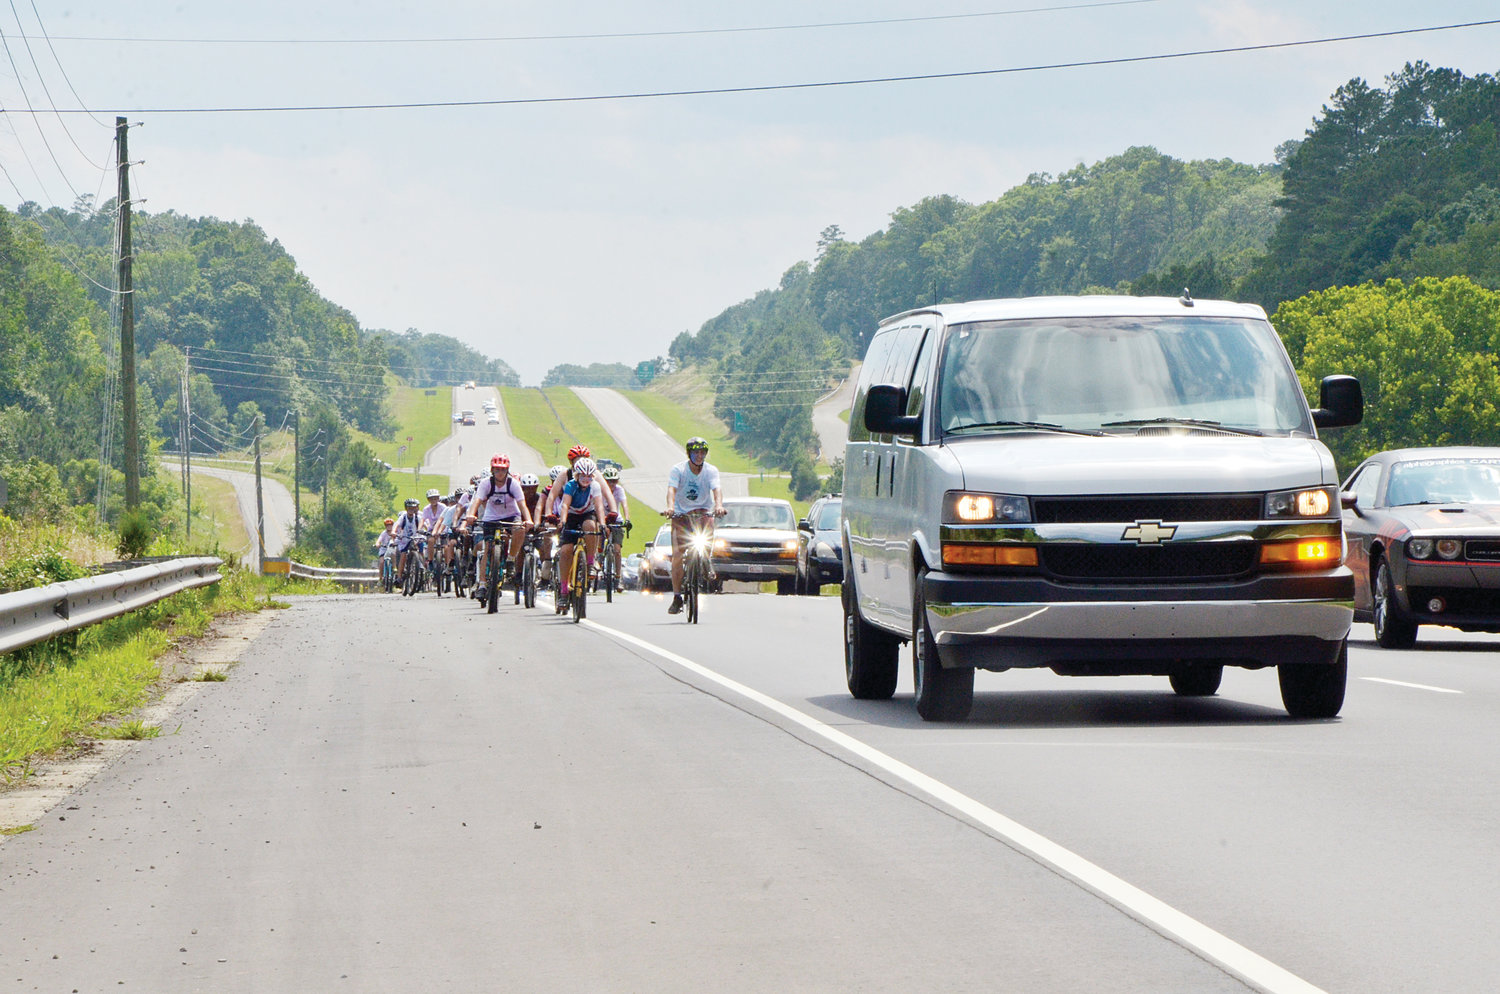 The Chatham County Sheriff's Office blocked traffic and kept a careful eye as the campers and leaders of Thursday's event as they travelled down U.S. 64. Stormy weather and traffic conditions were top concerns.